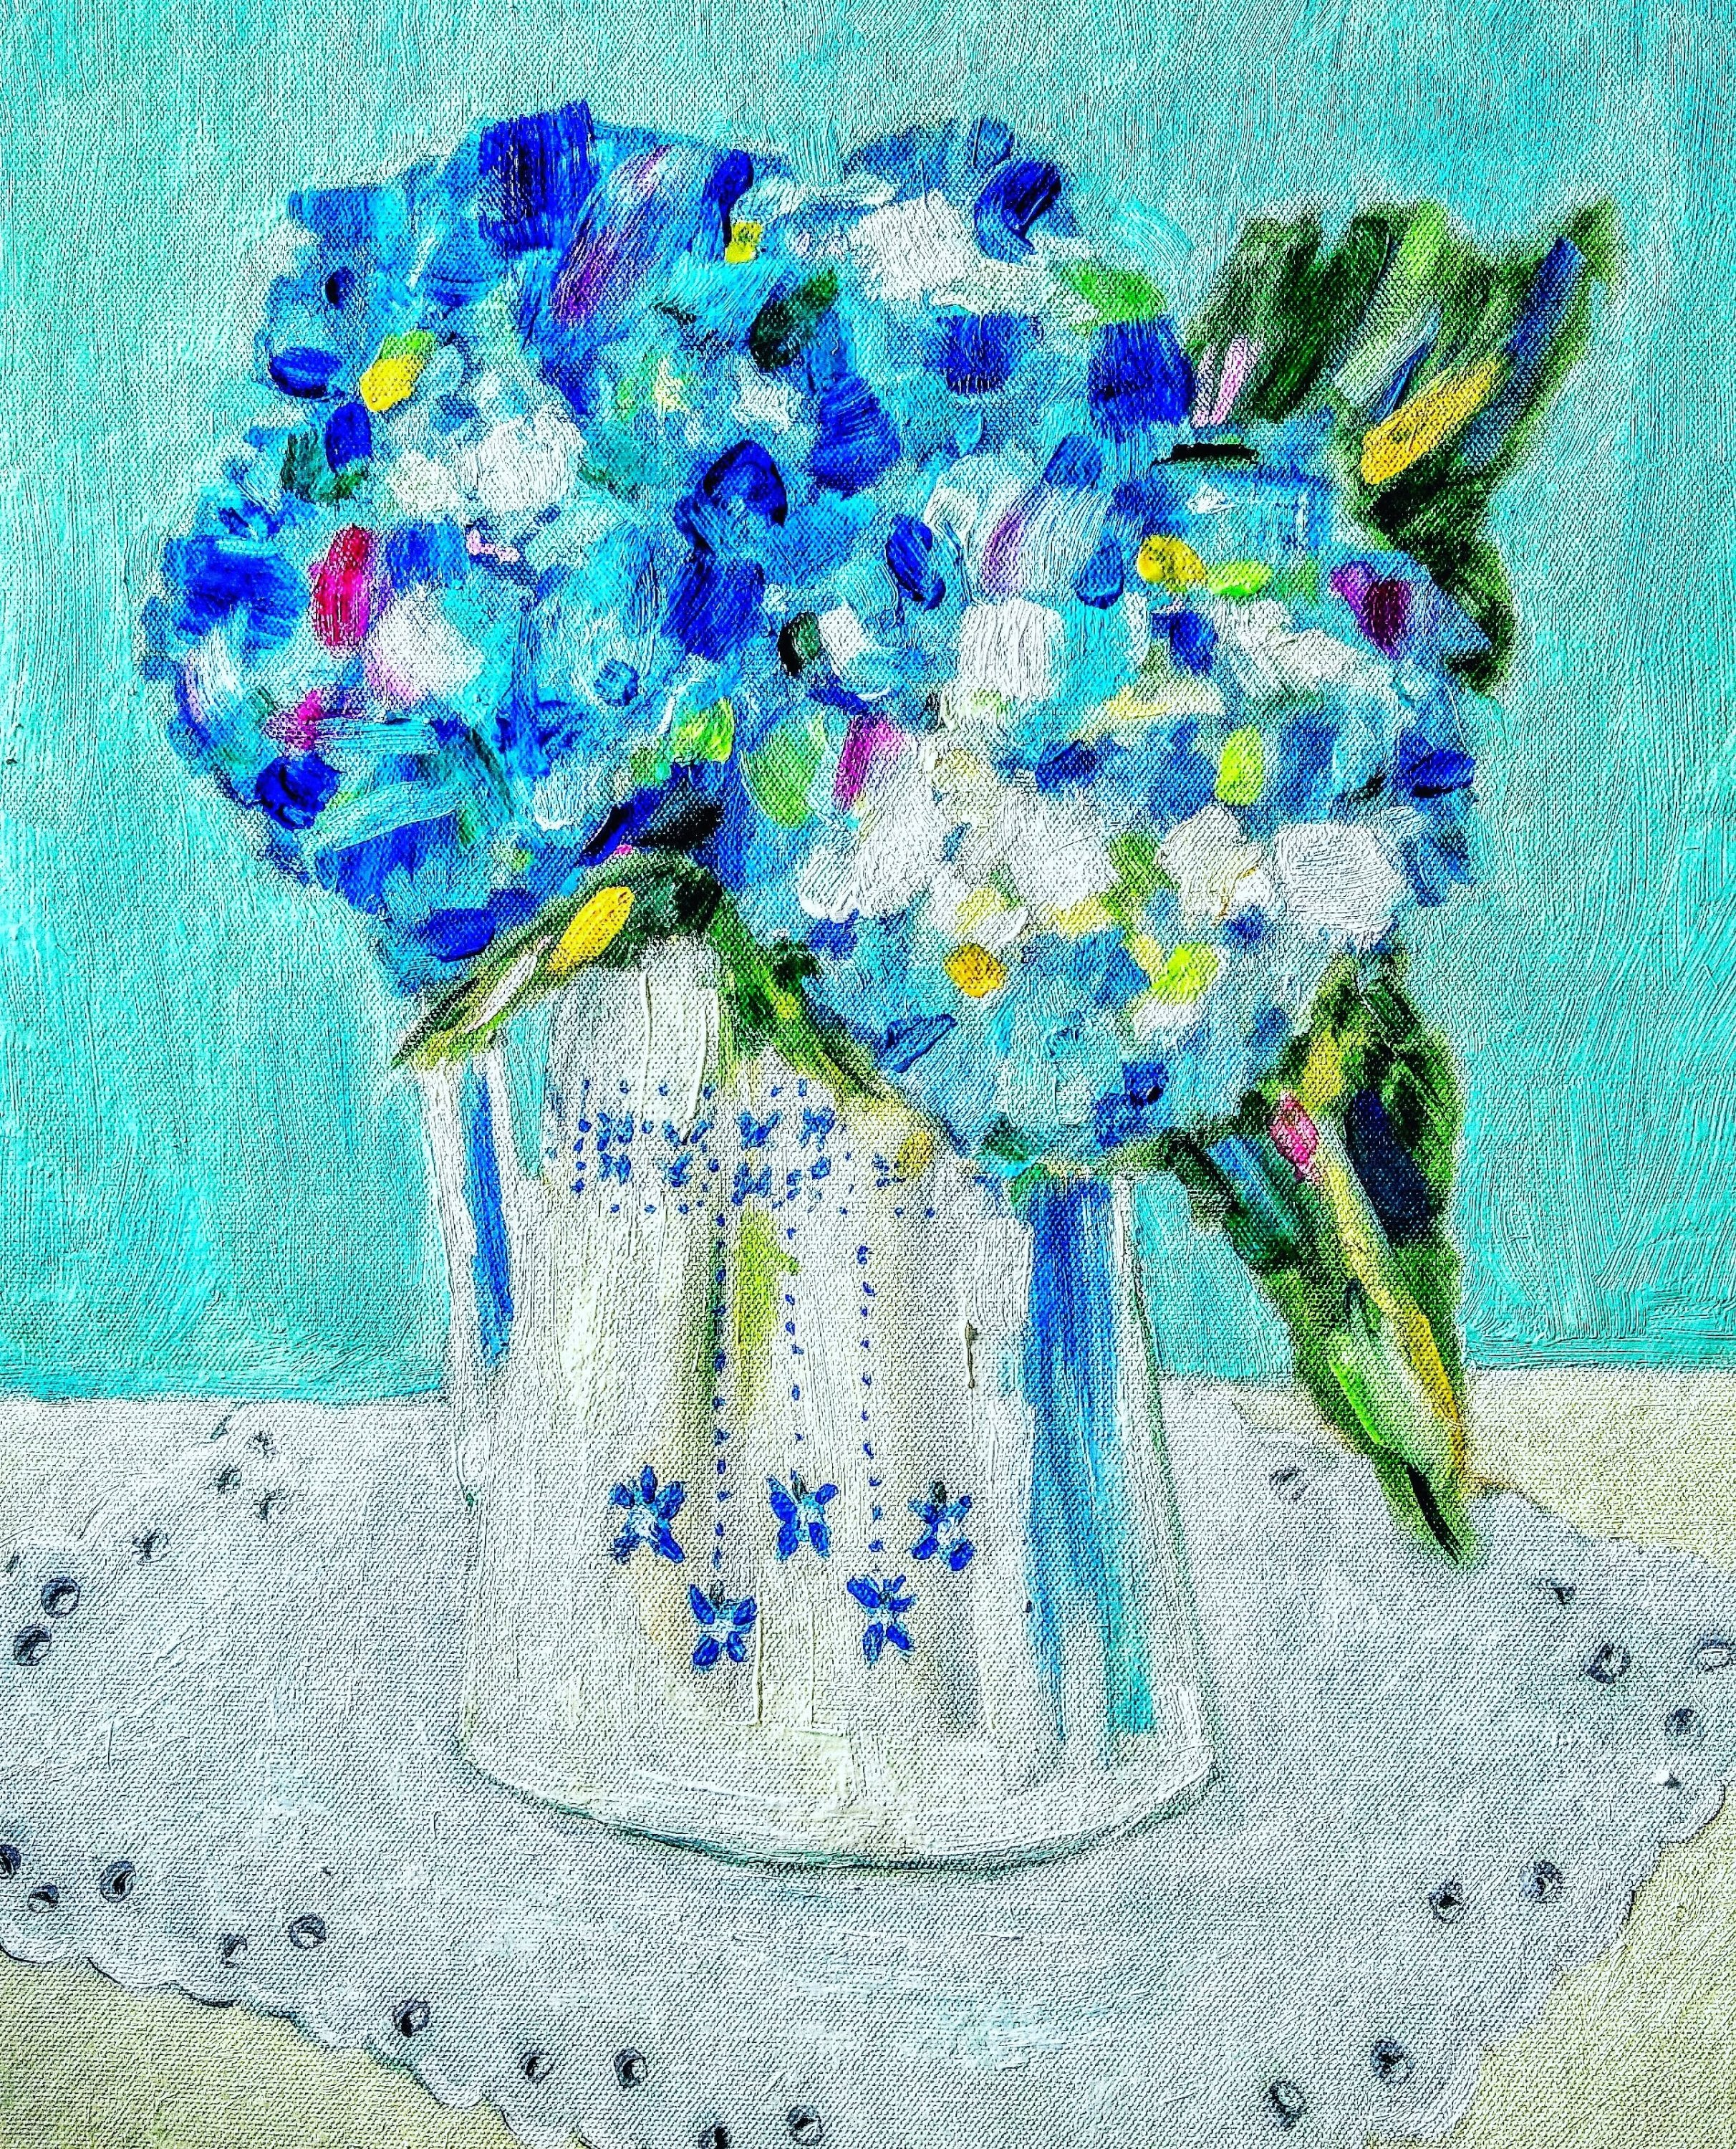 Tamara Jare contemporary oil painting Blue hydrangea